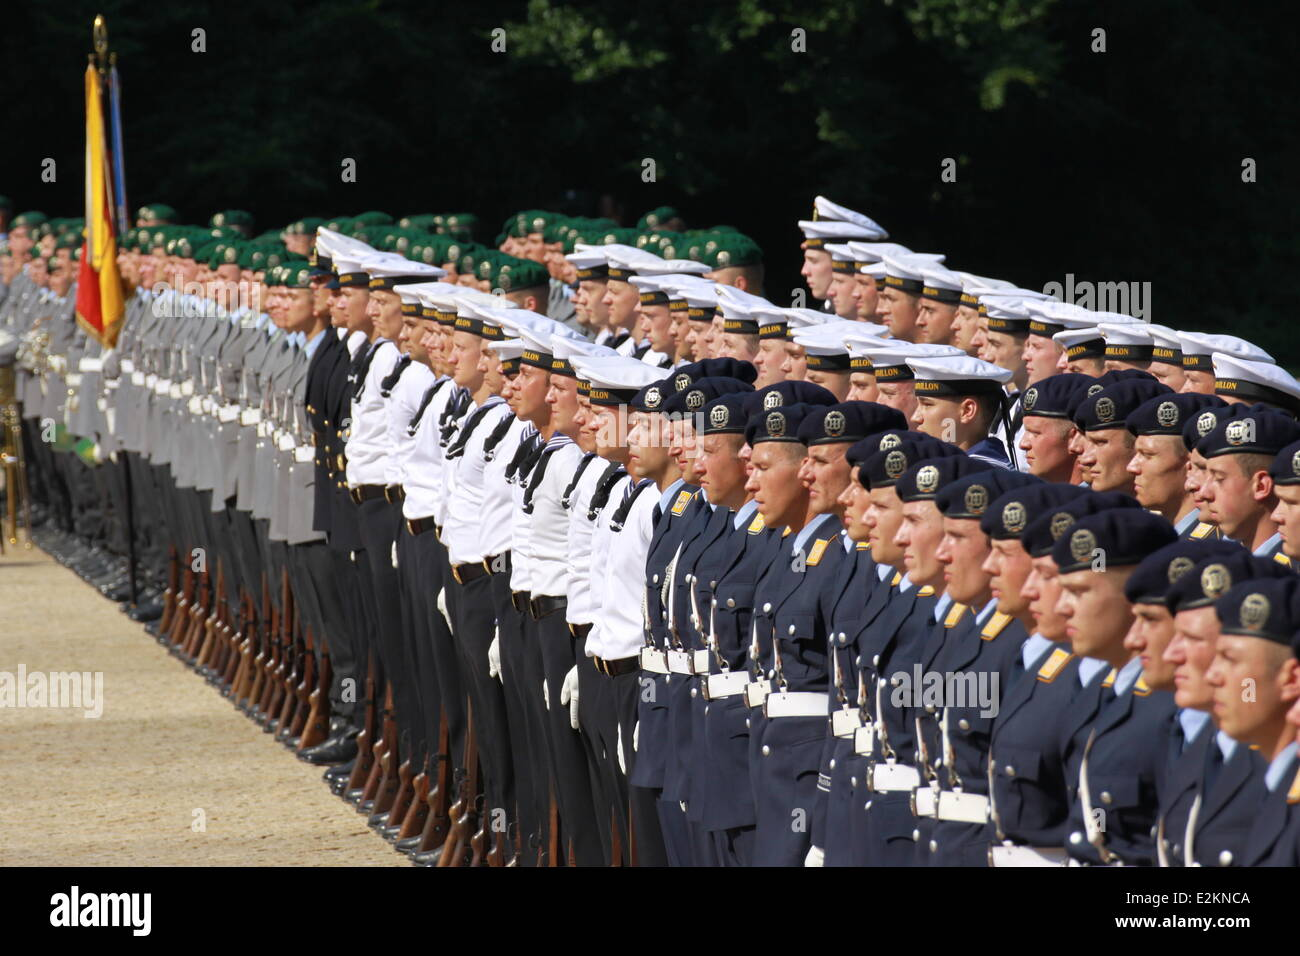 Atmosphere at Schloss Bellevue Berlin. It is President Obama's first visit to Berlin and he is due to deliver a Stock Photo